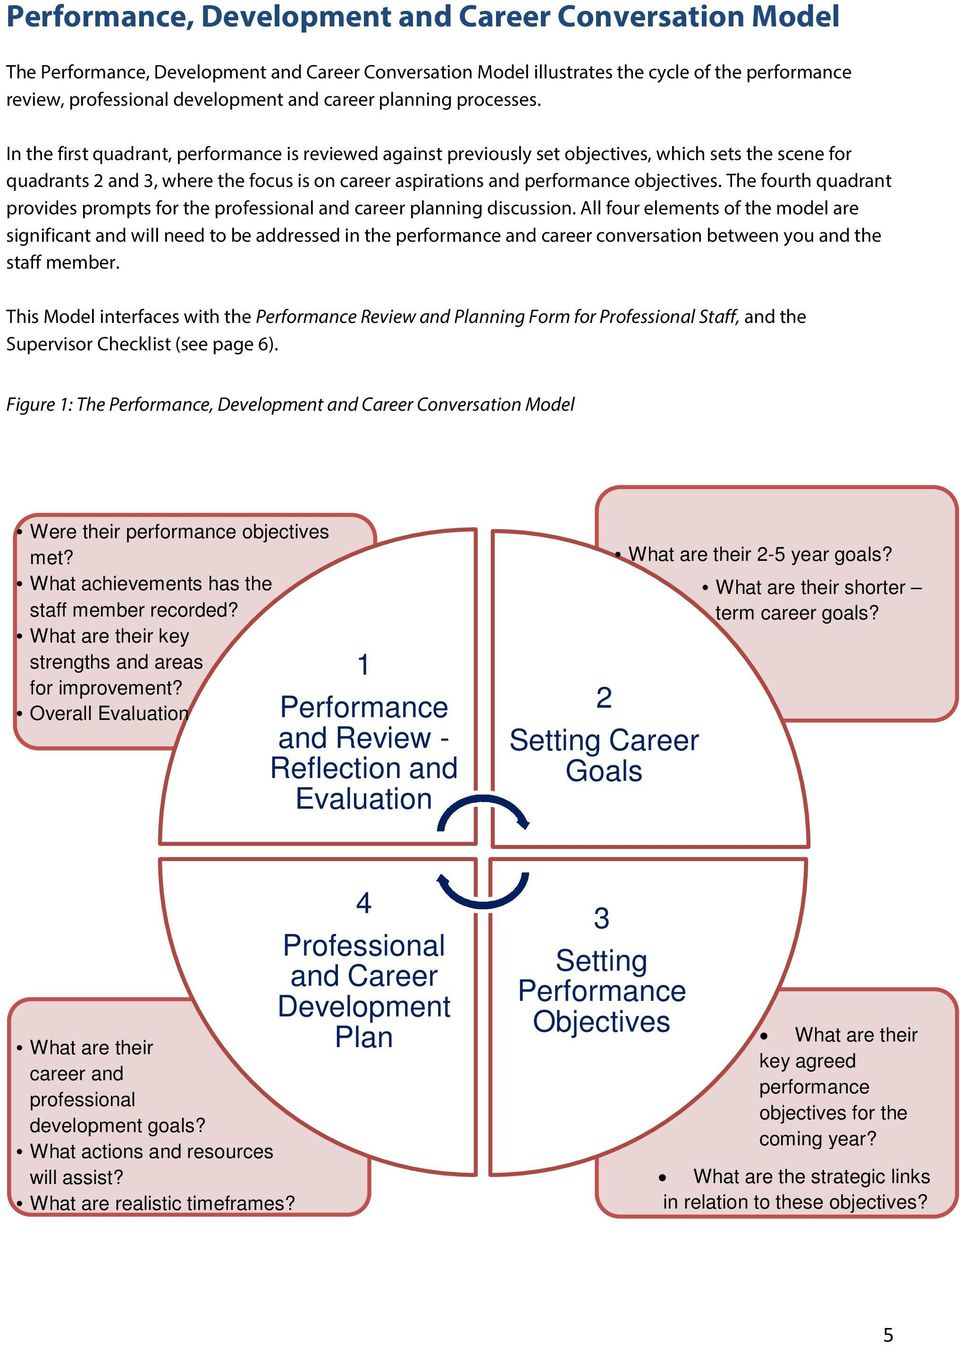 In the first quadrant, performance is reviewed against previously set objectives, which sets the scene for quadrants 2 and 3, where the focus is on career aspirations and performance objectives.